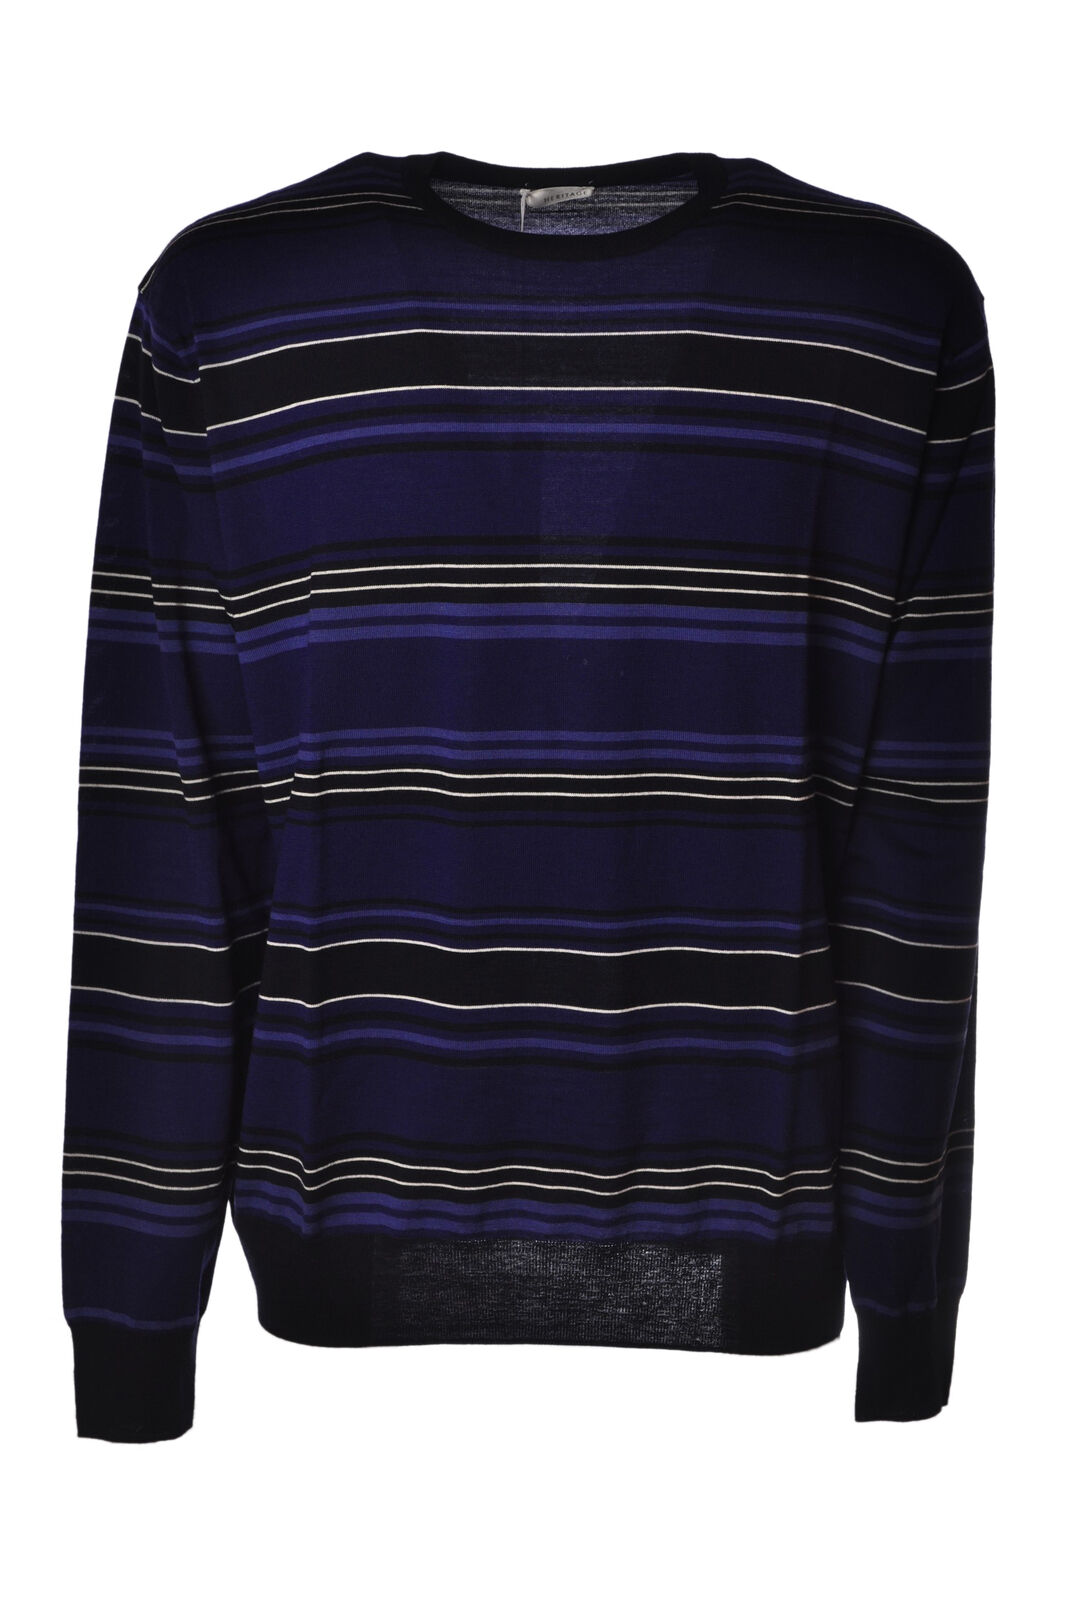 Heritage  -  Sweaters - Male - Fantasy - 4679421A180022